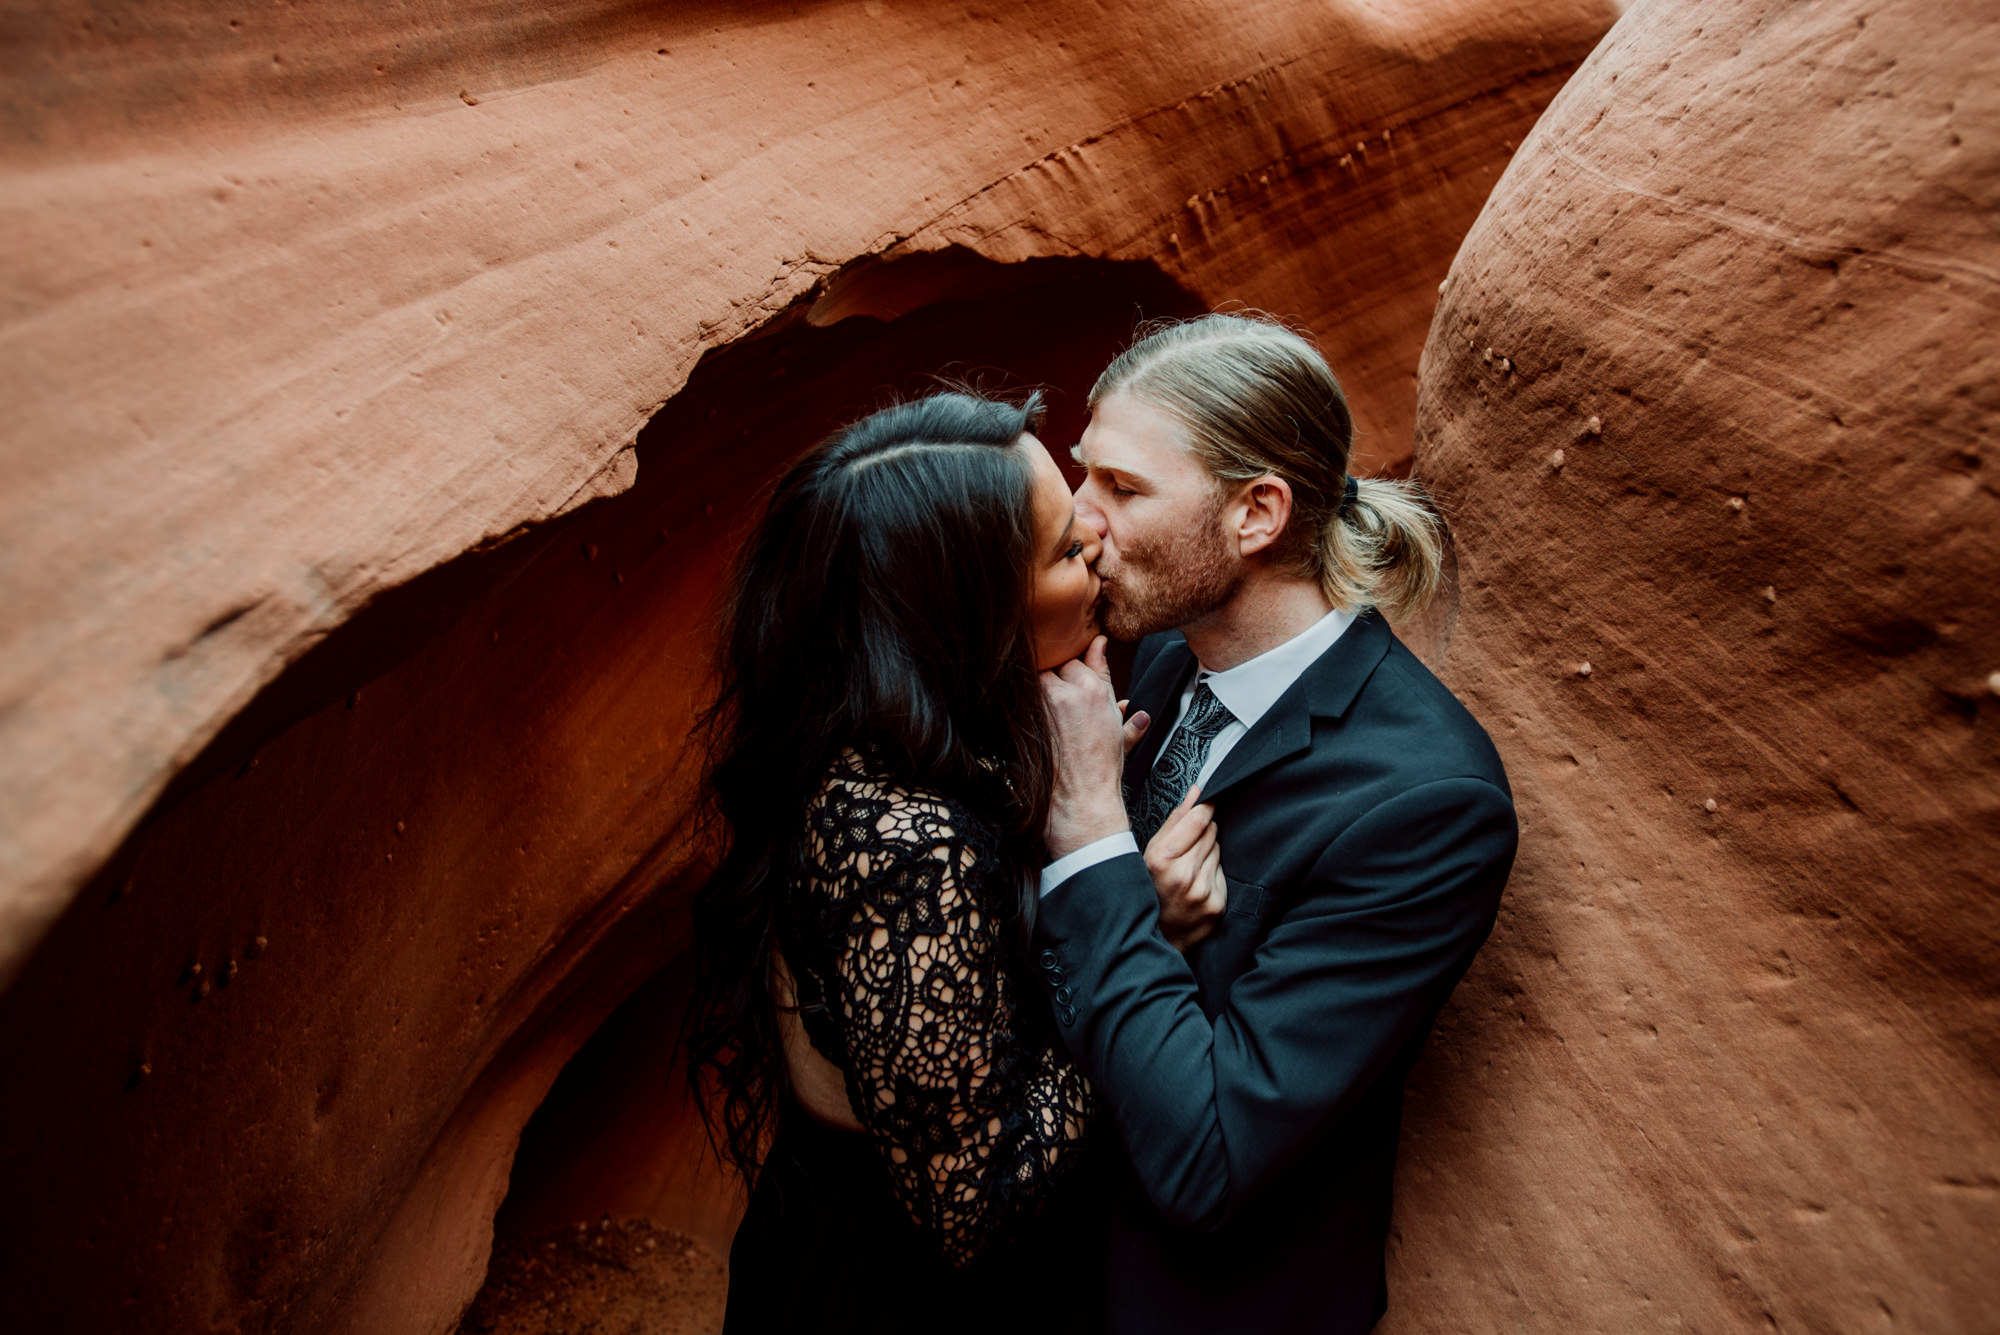 This photo shows a sweet moment between the couple in the beautiful Arizona slot canyons